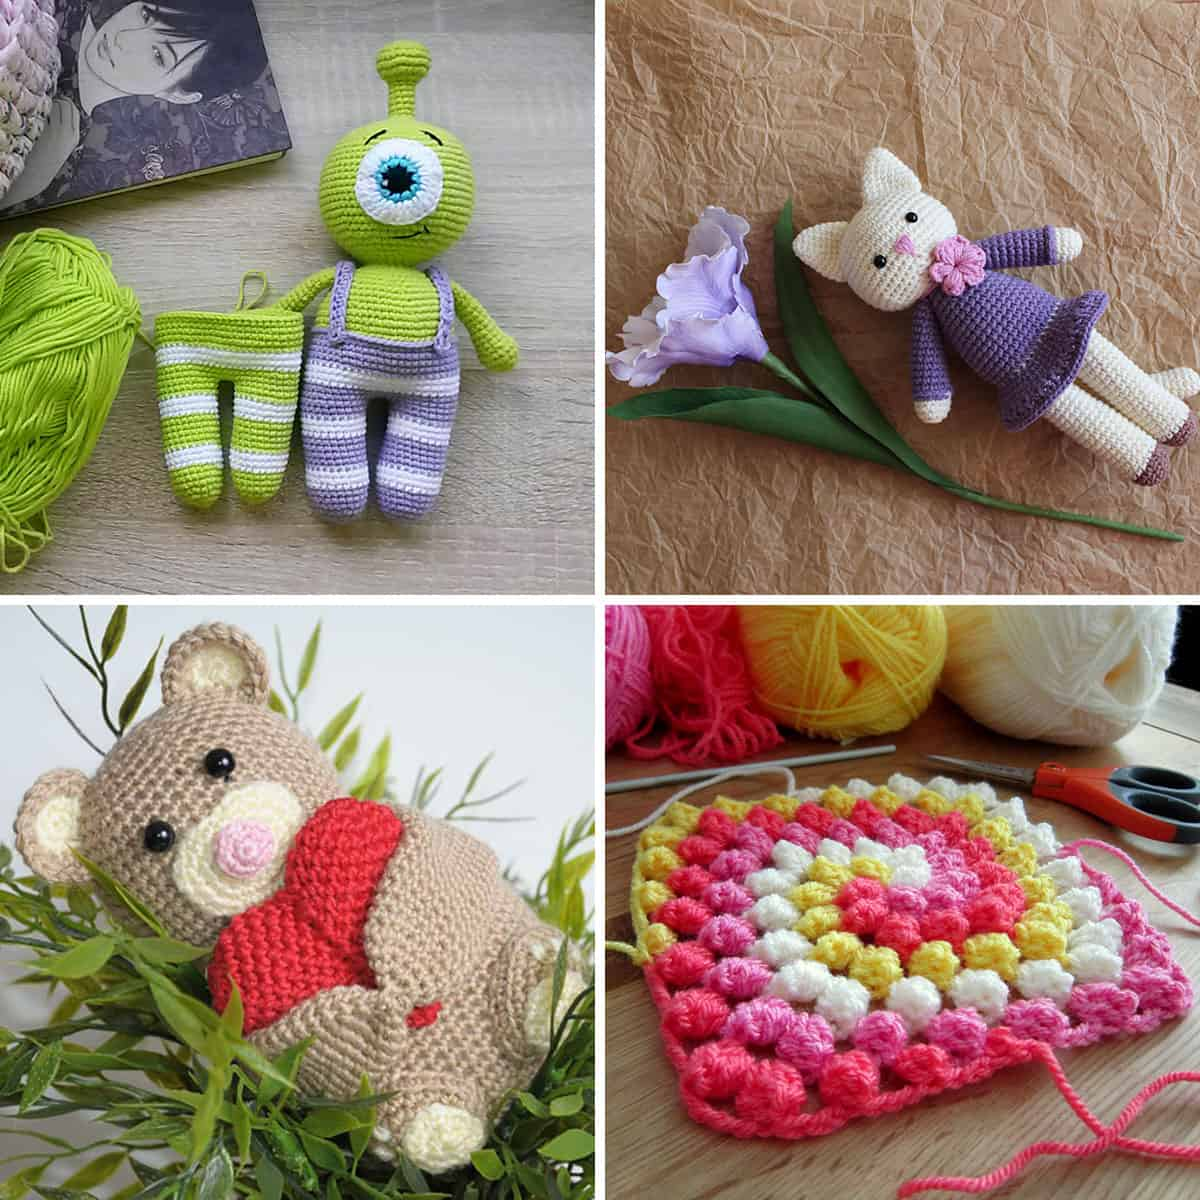 Easy crochet patterns and projects